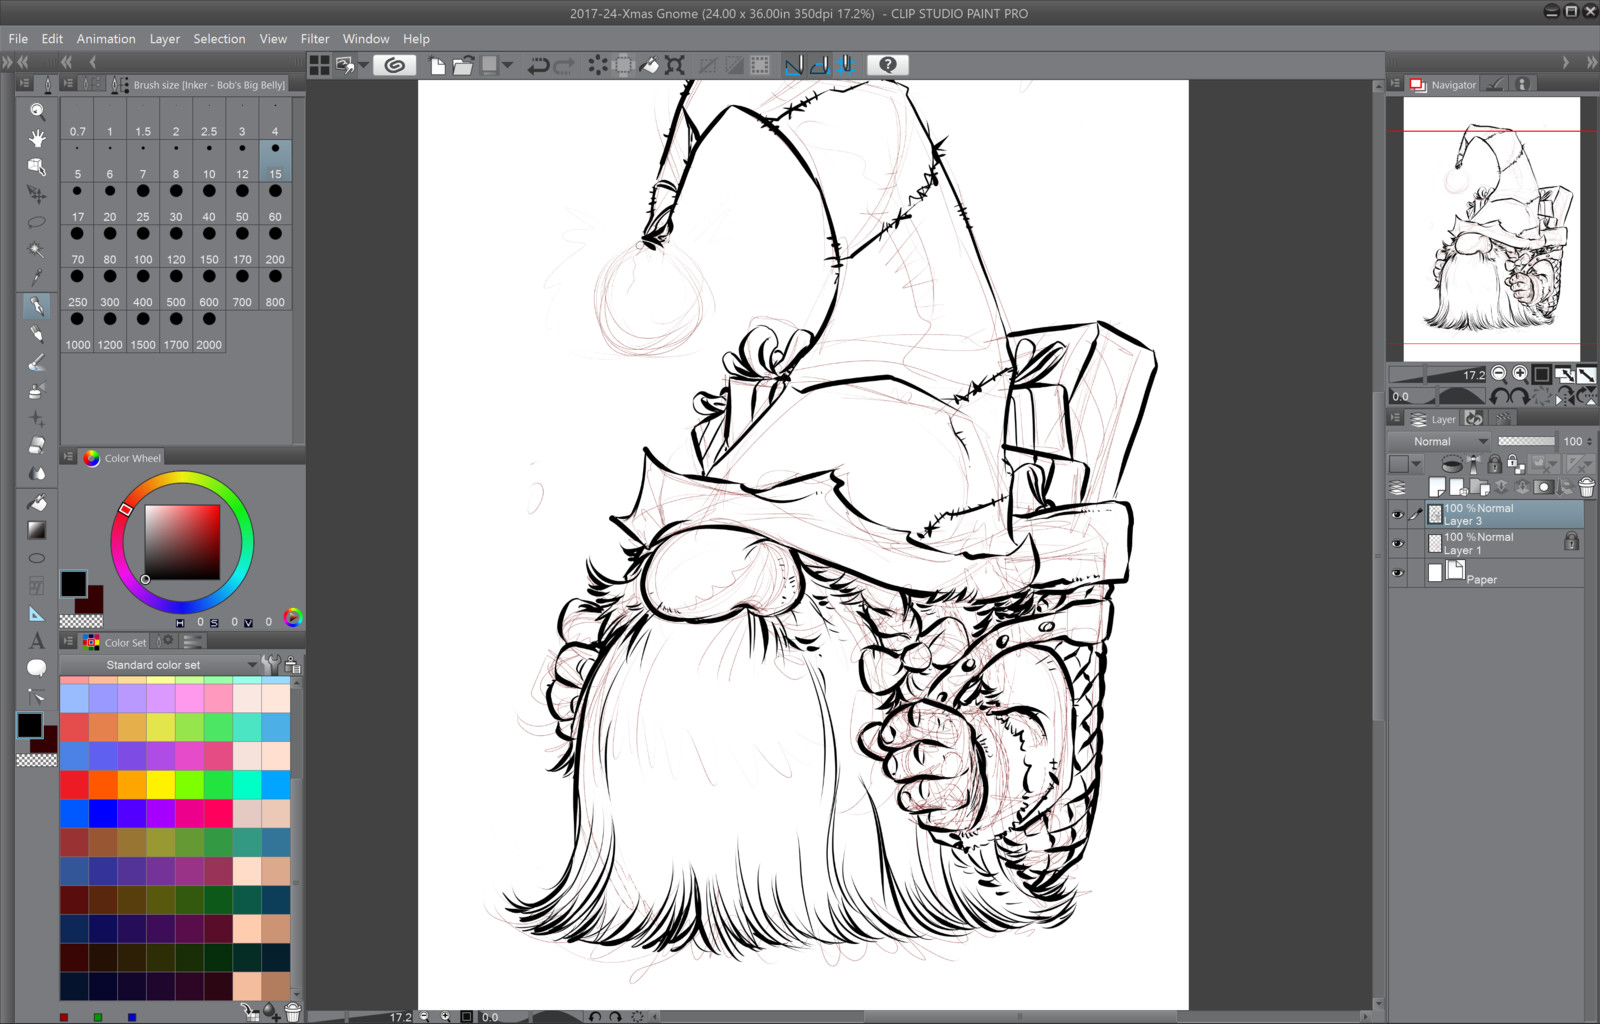 02- Inking over the rough line works